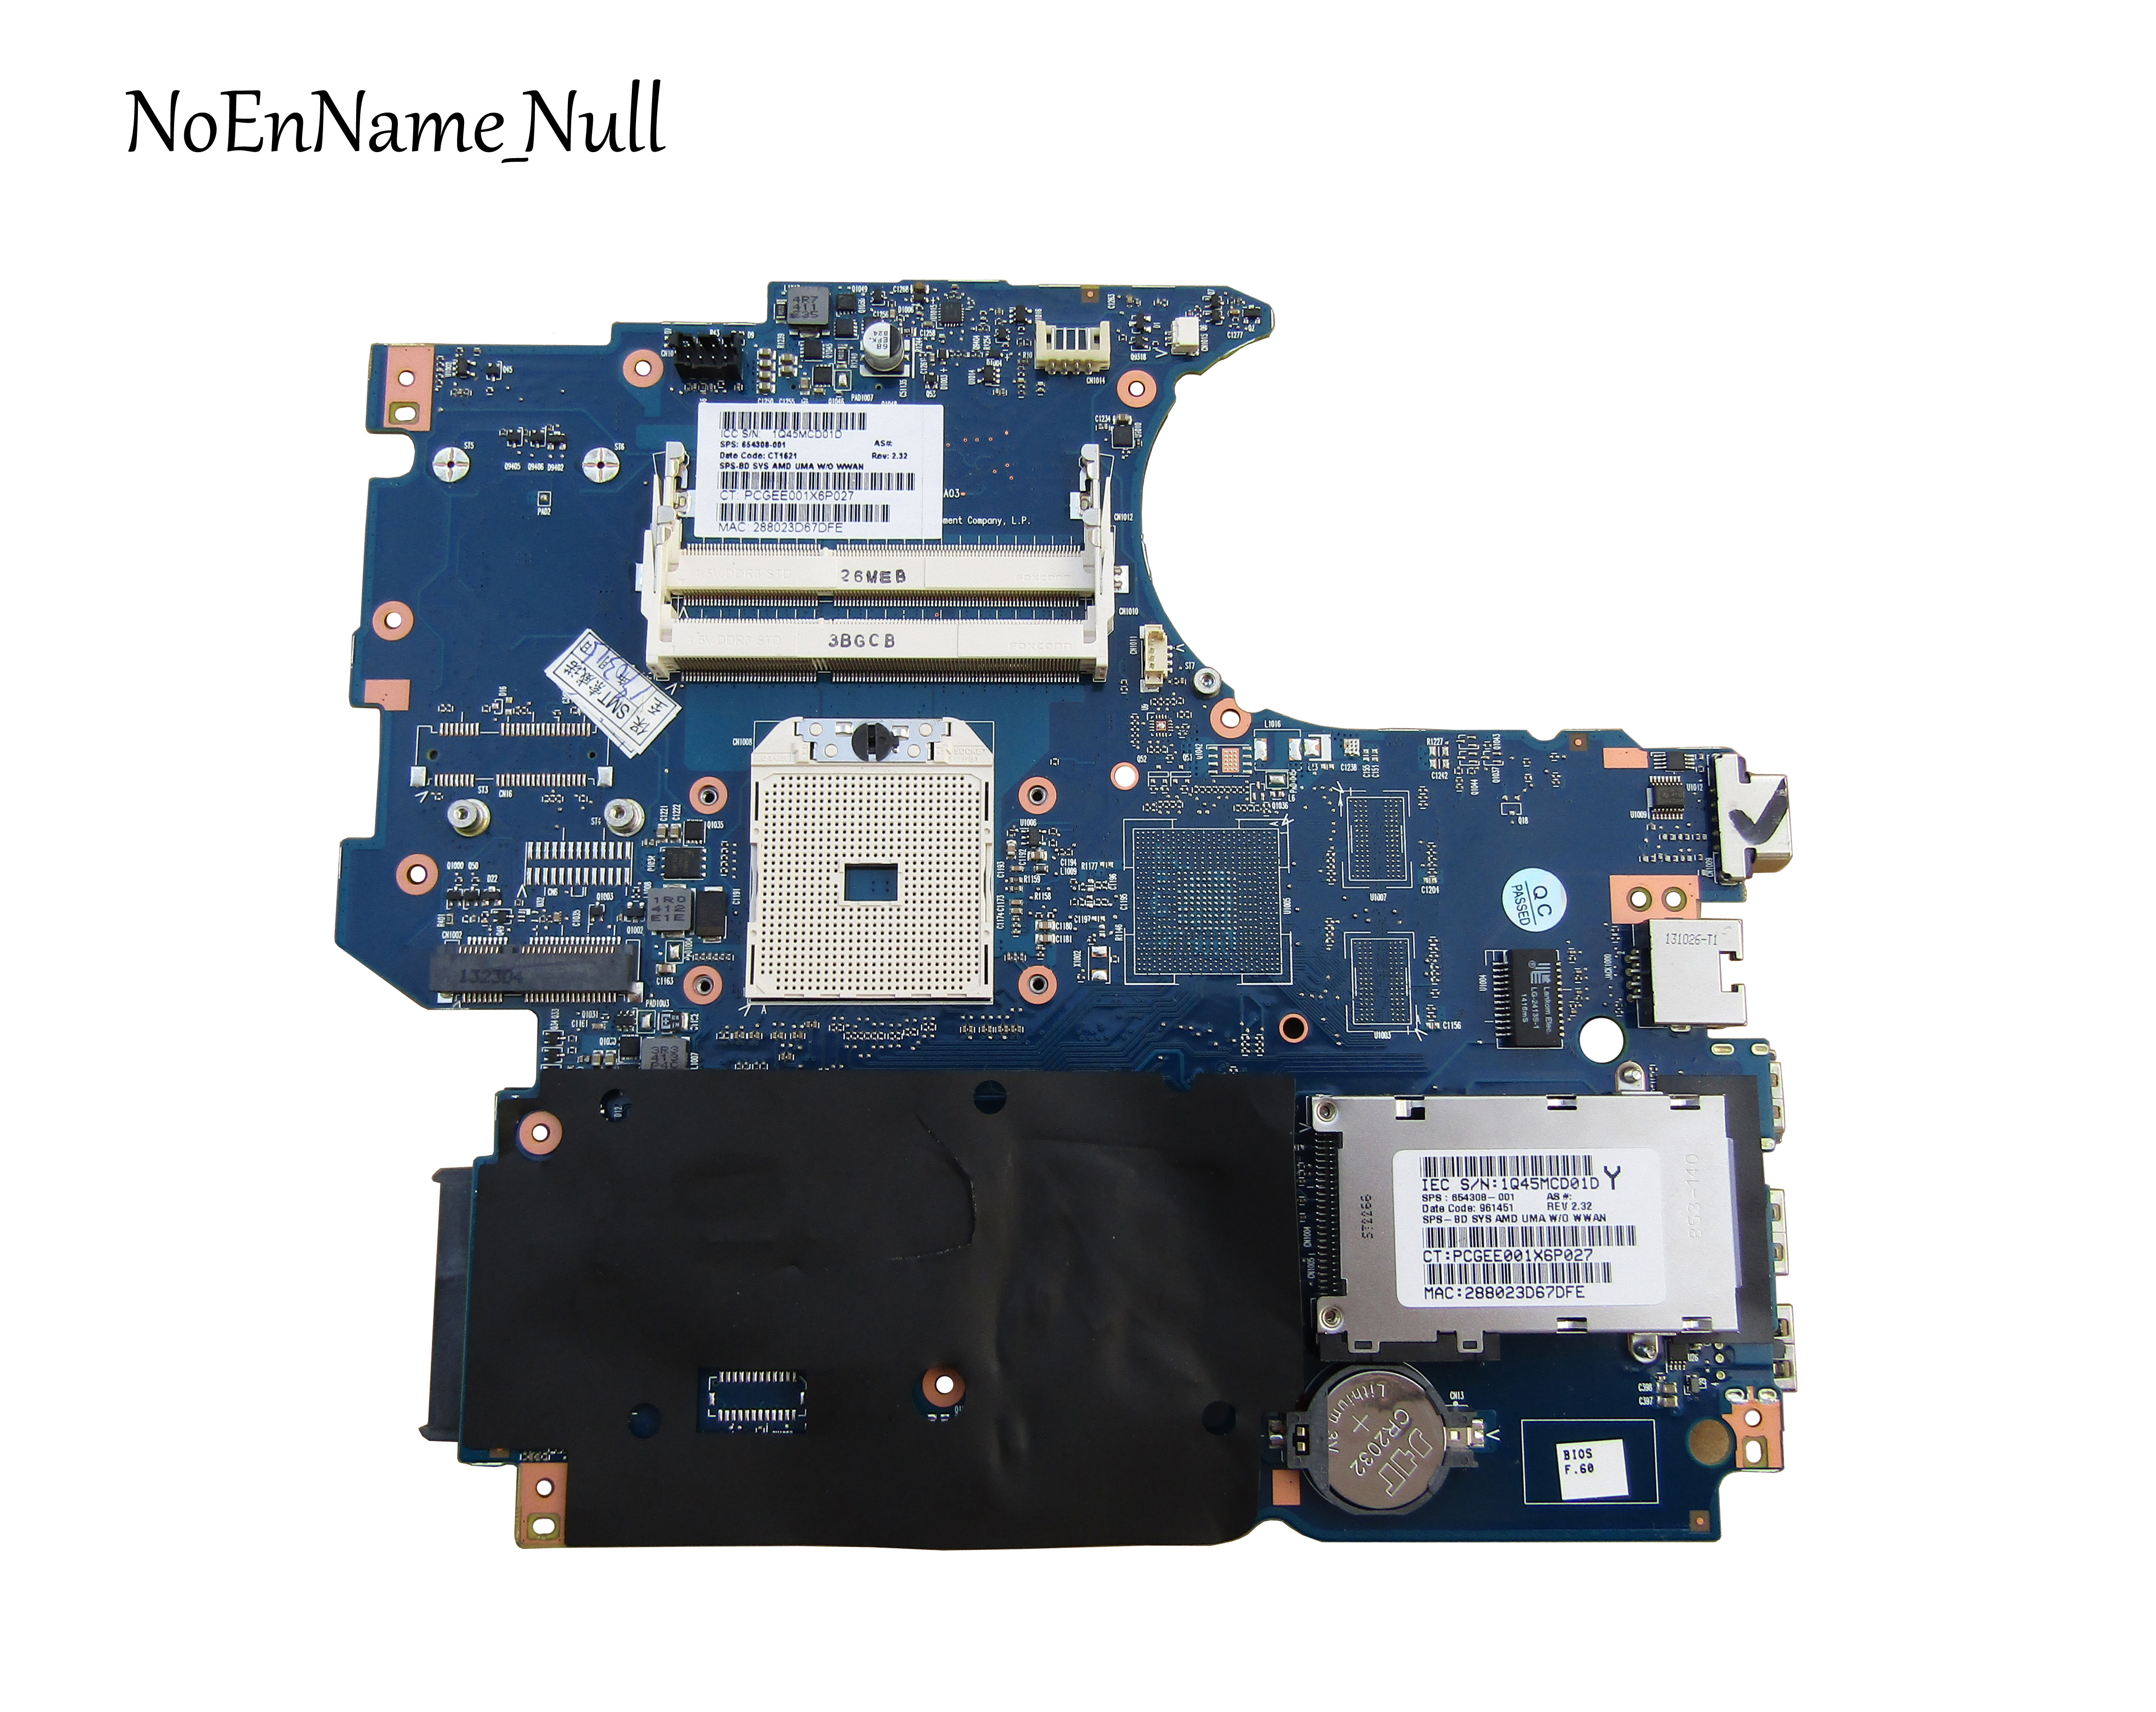 654308-001 Free Shipping FOR HP ProBook 4535S Motherboard PIXIES-6050A2426501-MB-A03 Laptop Motherboard Mainboard